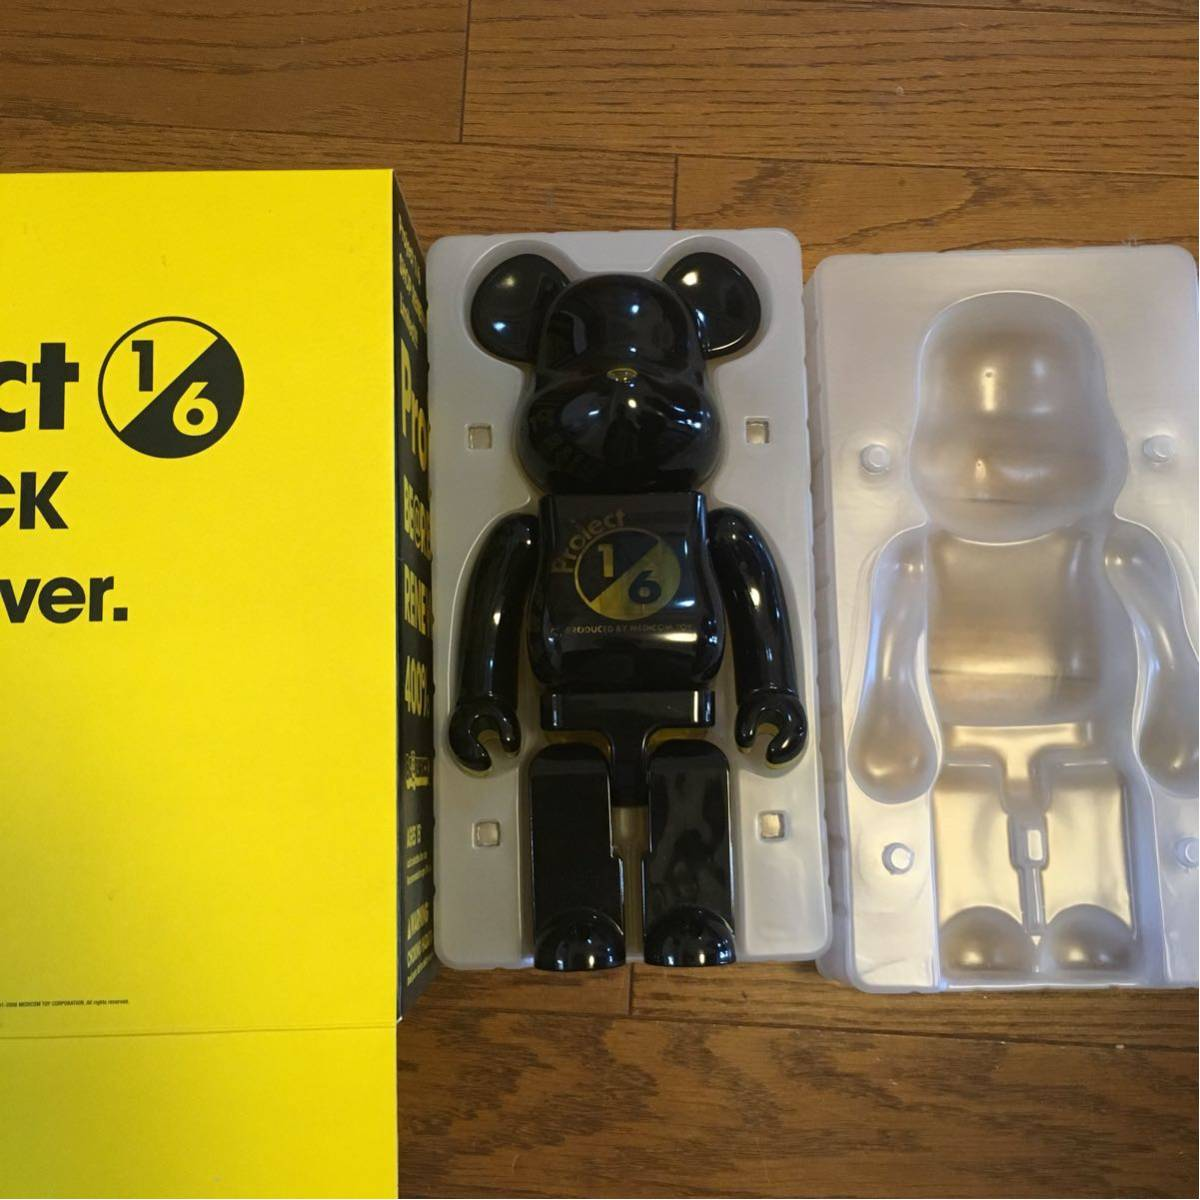 BE@RBRICK Project1/6 BE@RBRICK RENEWAL ver 400% ベアブリック 1/6計画 1/6プロジェクト リニューアル_画像4